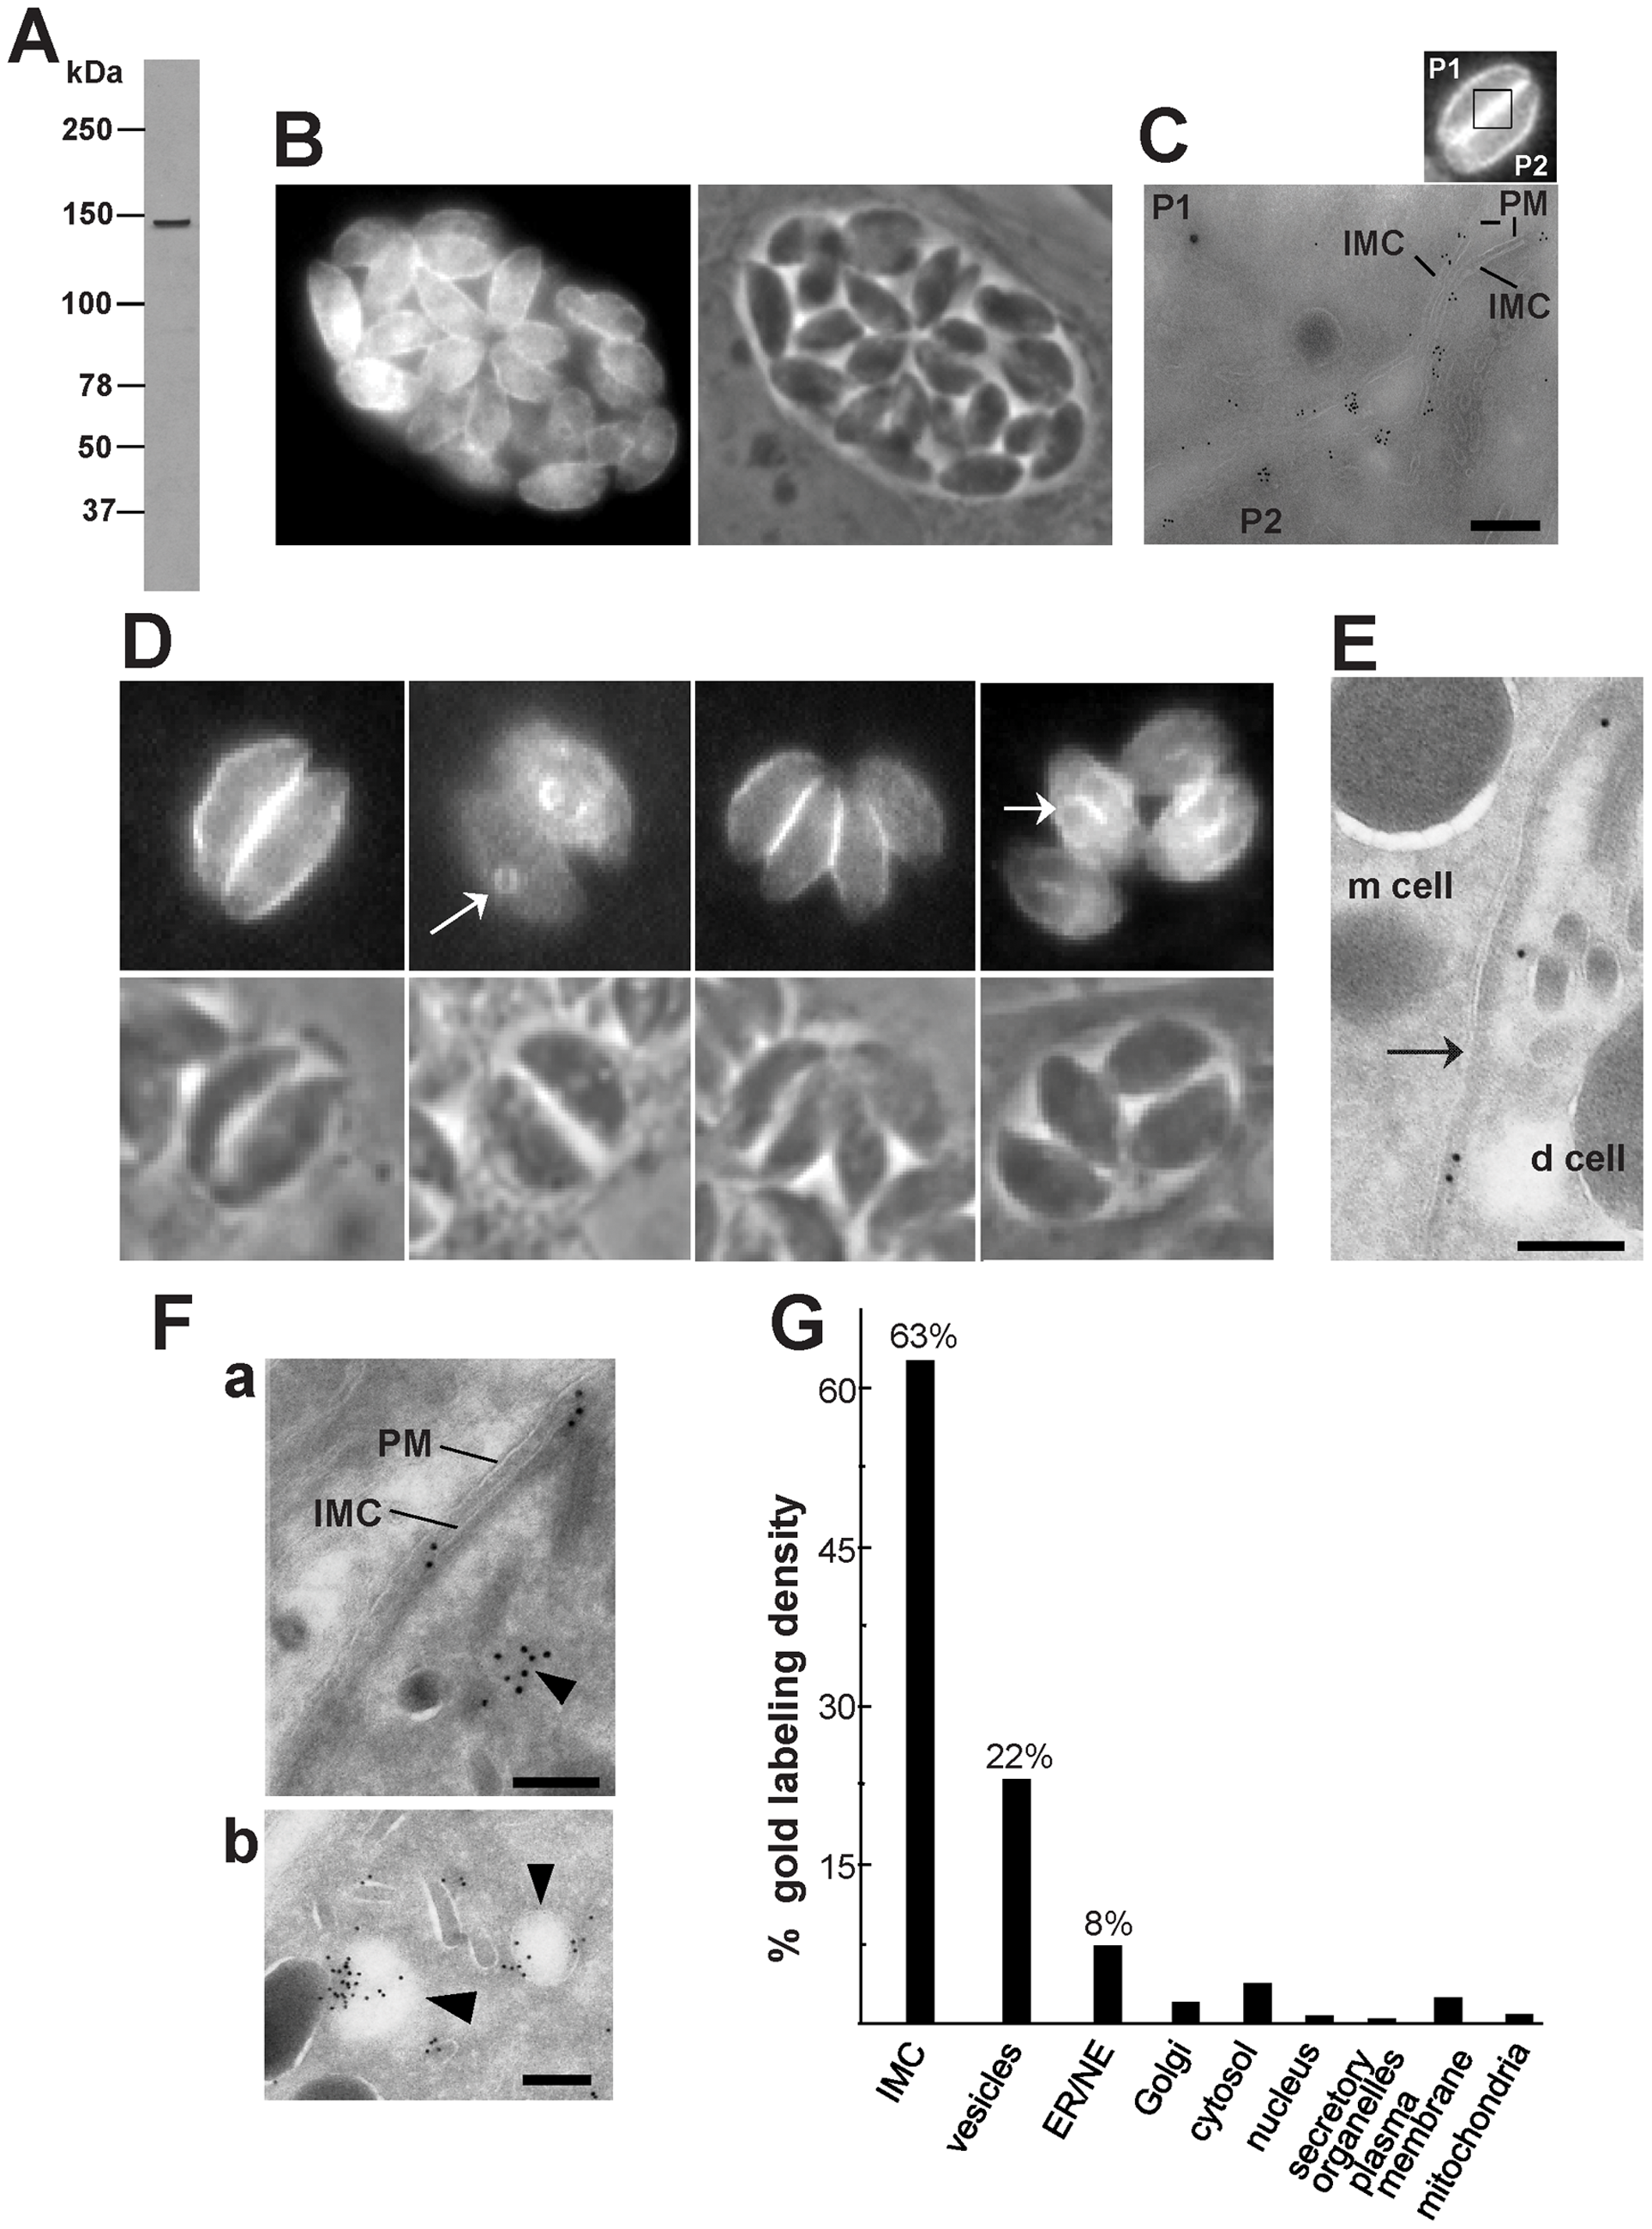 Expression and distribution of TgNCR1 in transgenic <i>T. gondii.</i>